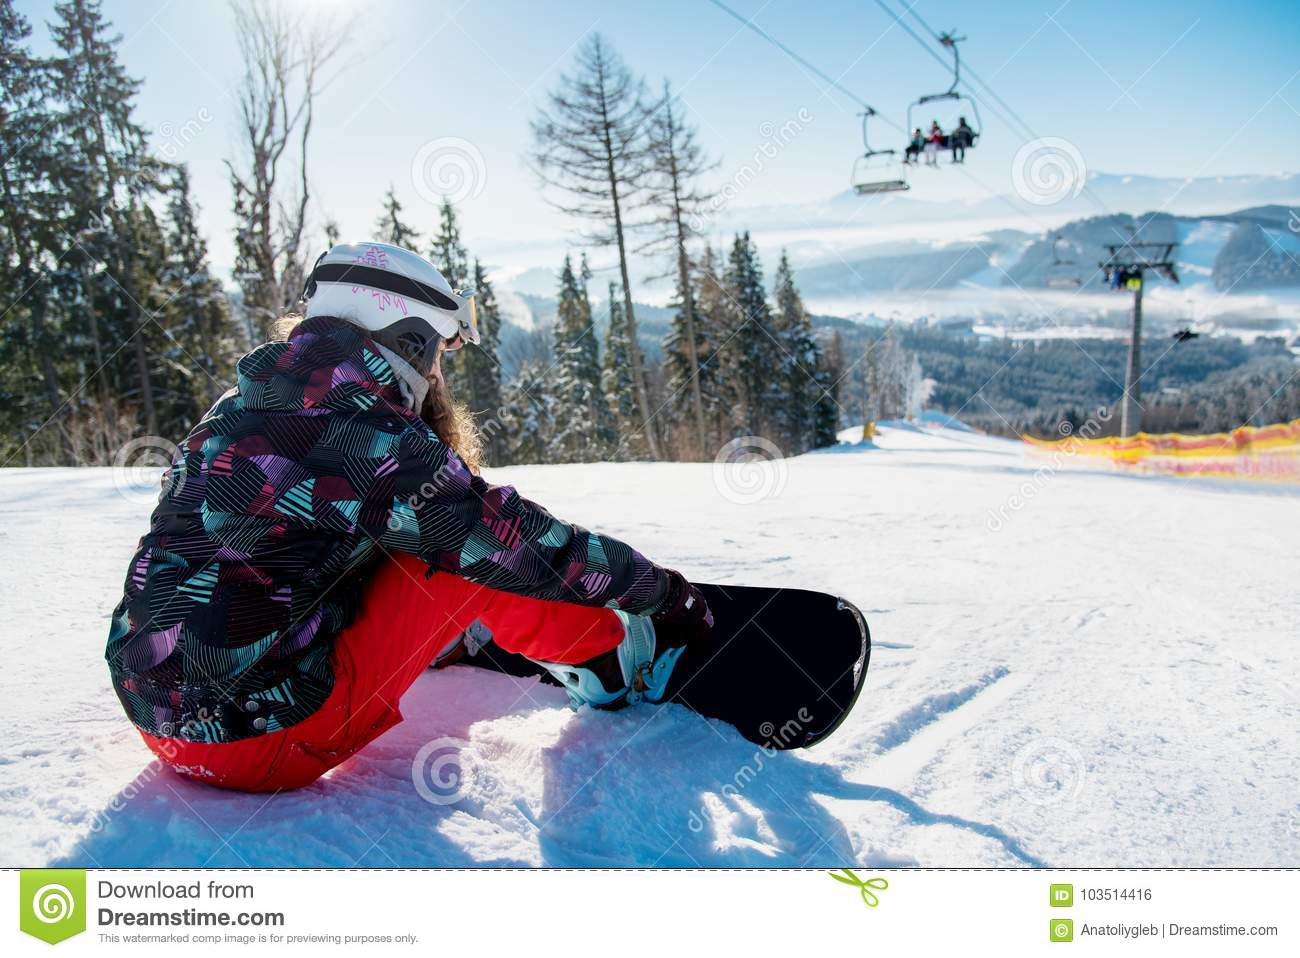 Snowboarder woman resting on ski slope under the lift